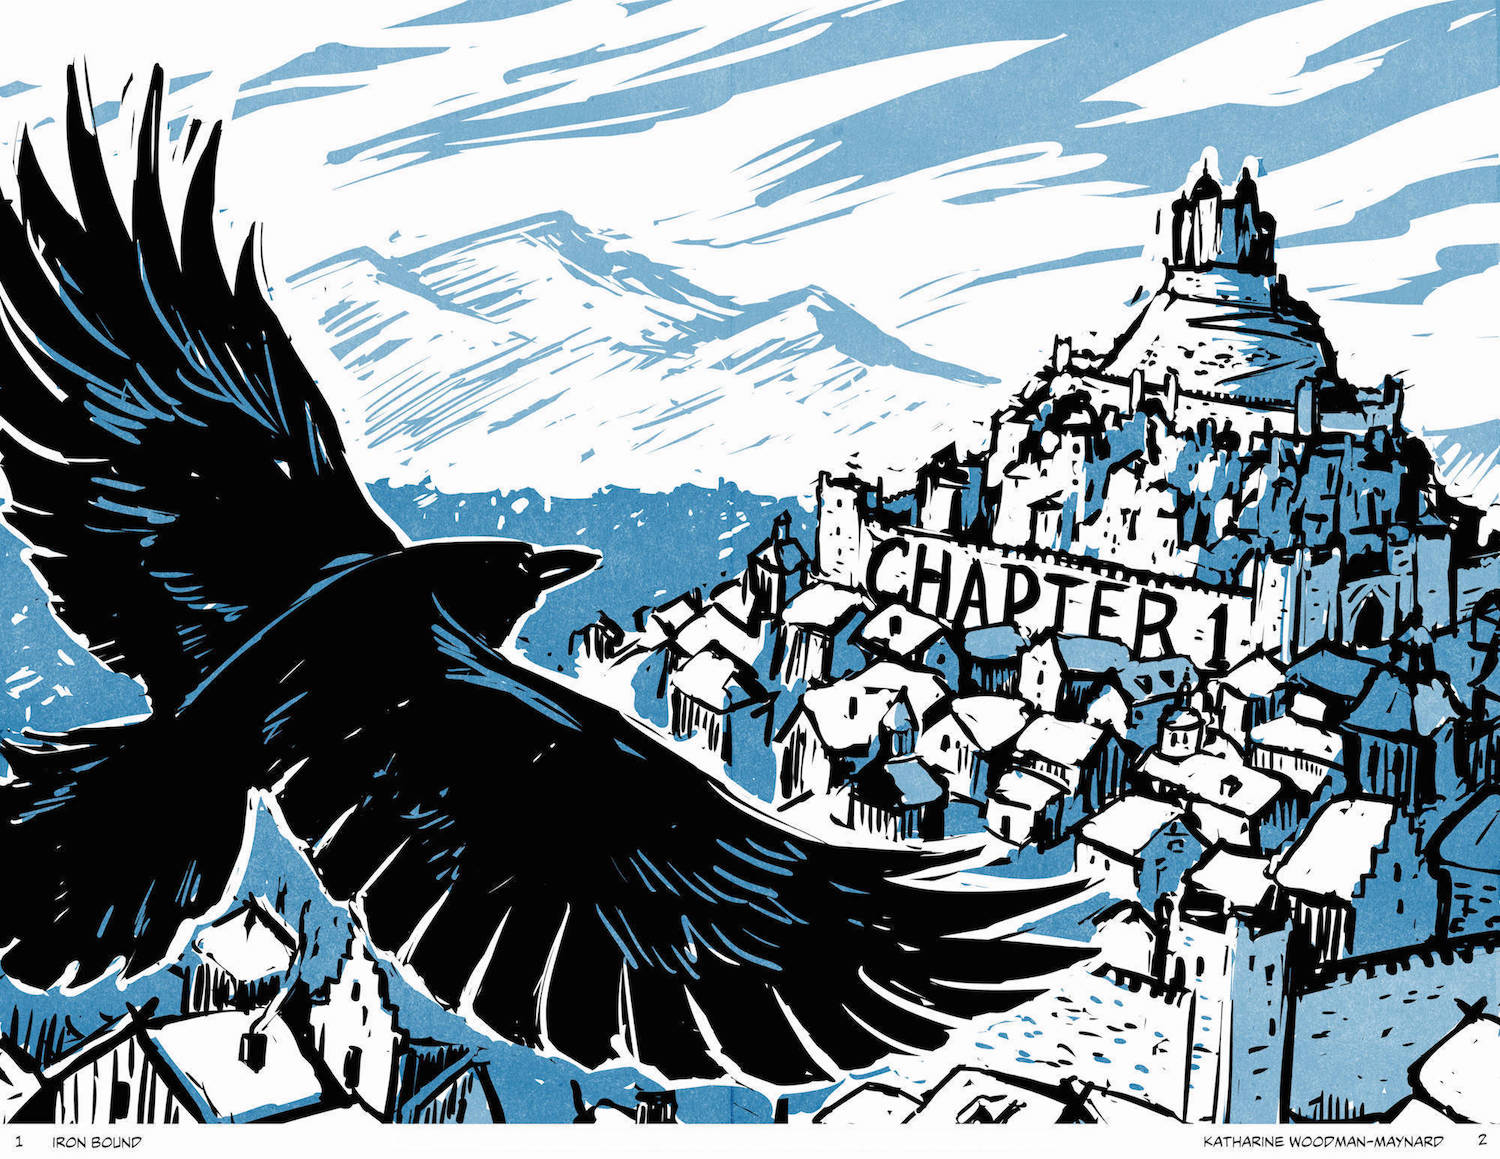 Sample art from my first graphic novel IRON BOUND which takes place in a medieval Scandinavian world.